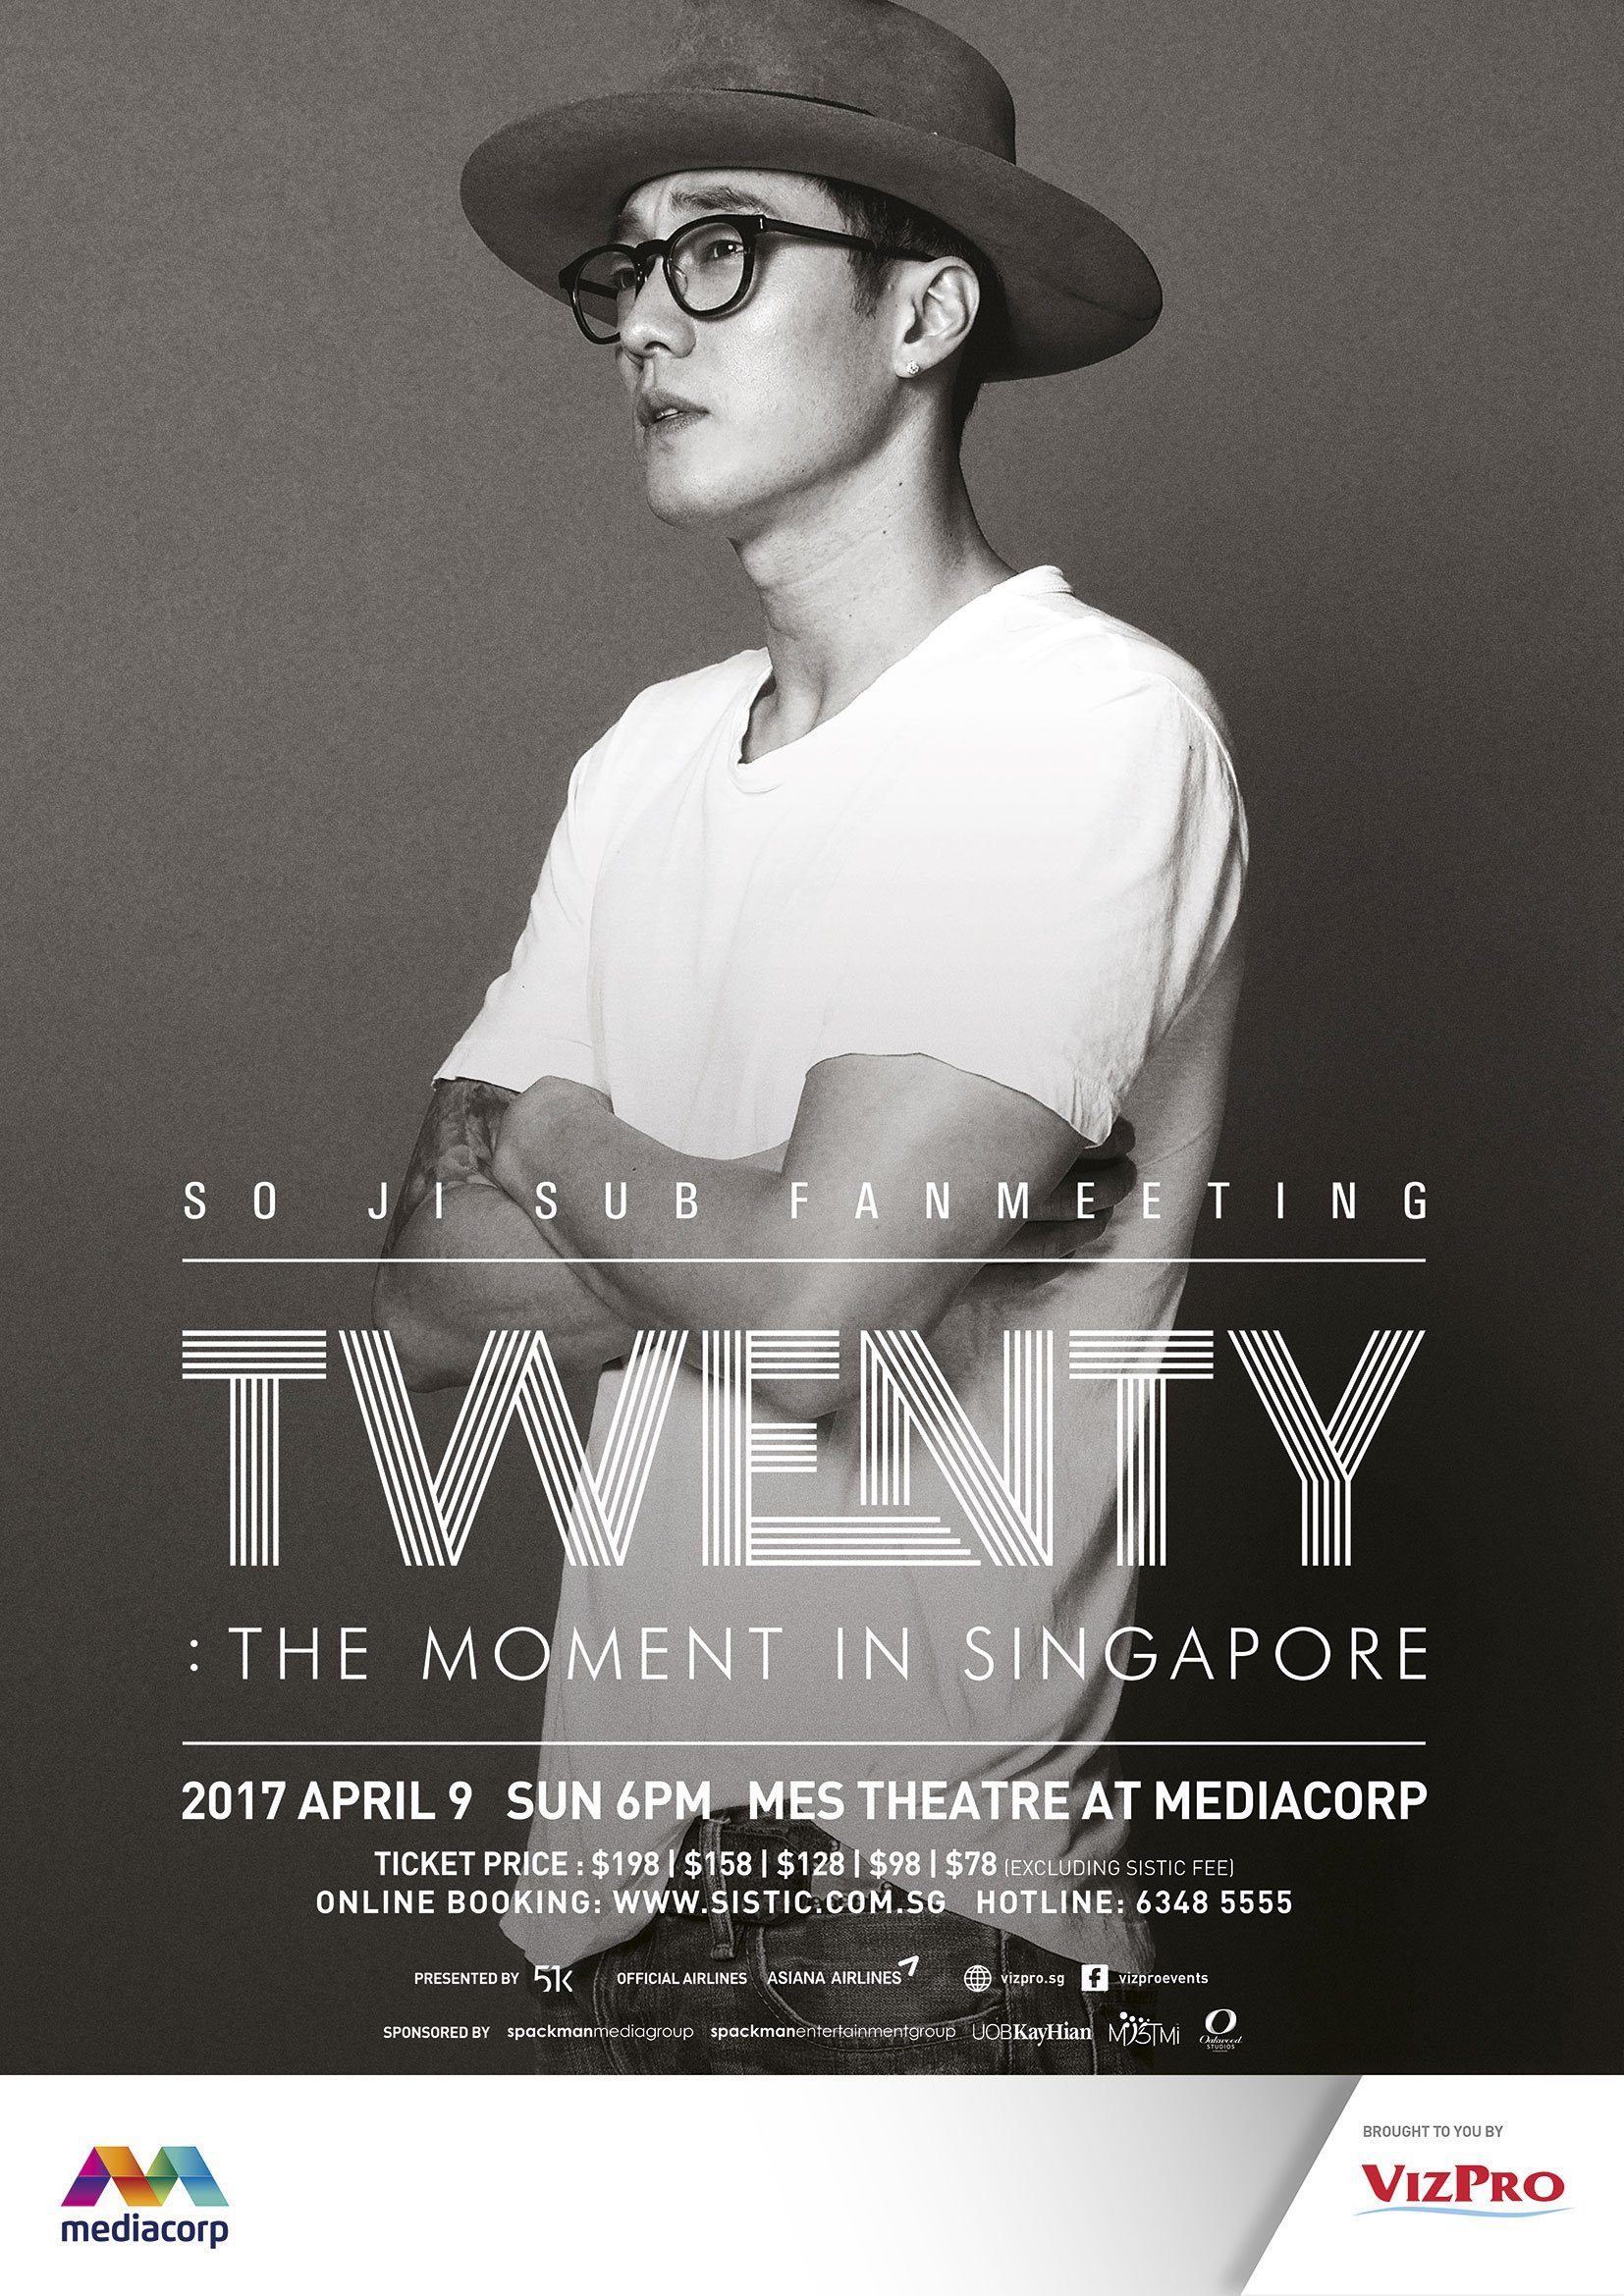 [UPCOMING EVENT] Actor So Ji Sub Brings Fan Meeting Tour To Singapore This April